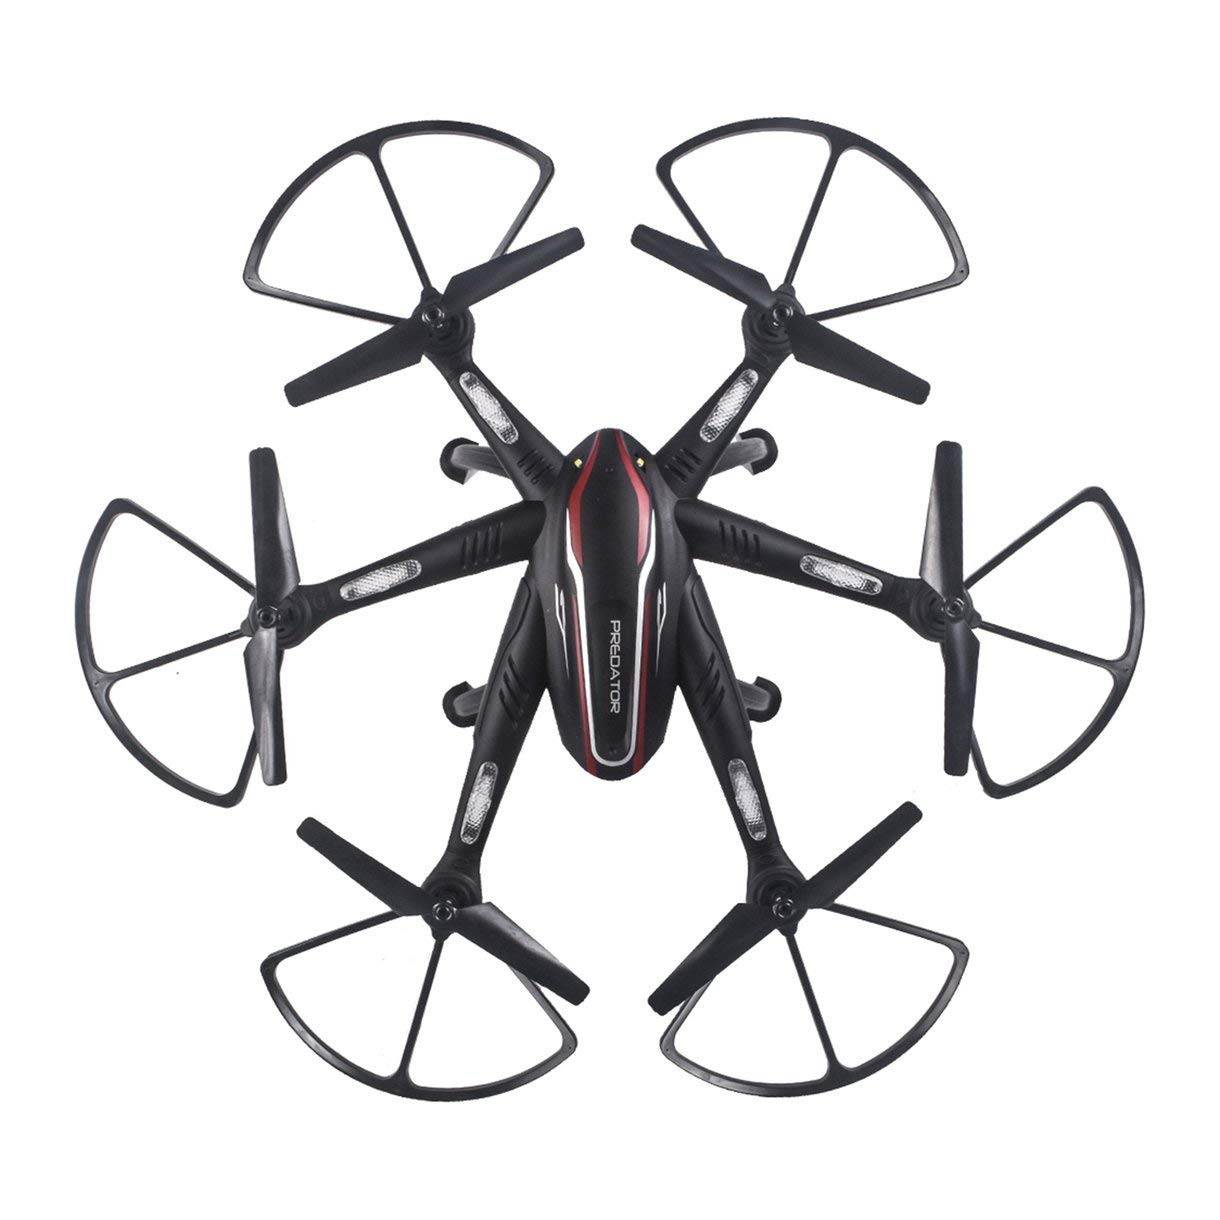 L100 6-Axis 720P Wide Angle 2.4G RC Drone Quadcopter Aircraft Plane WiFi FPV Dual GPS 180°Adjustable Camera Remote Control   B0031OHND4